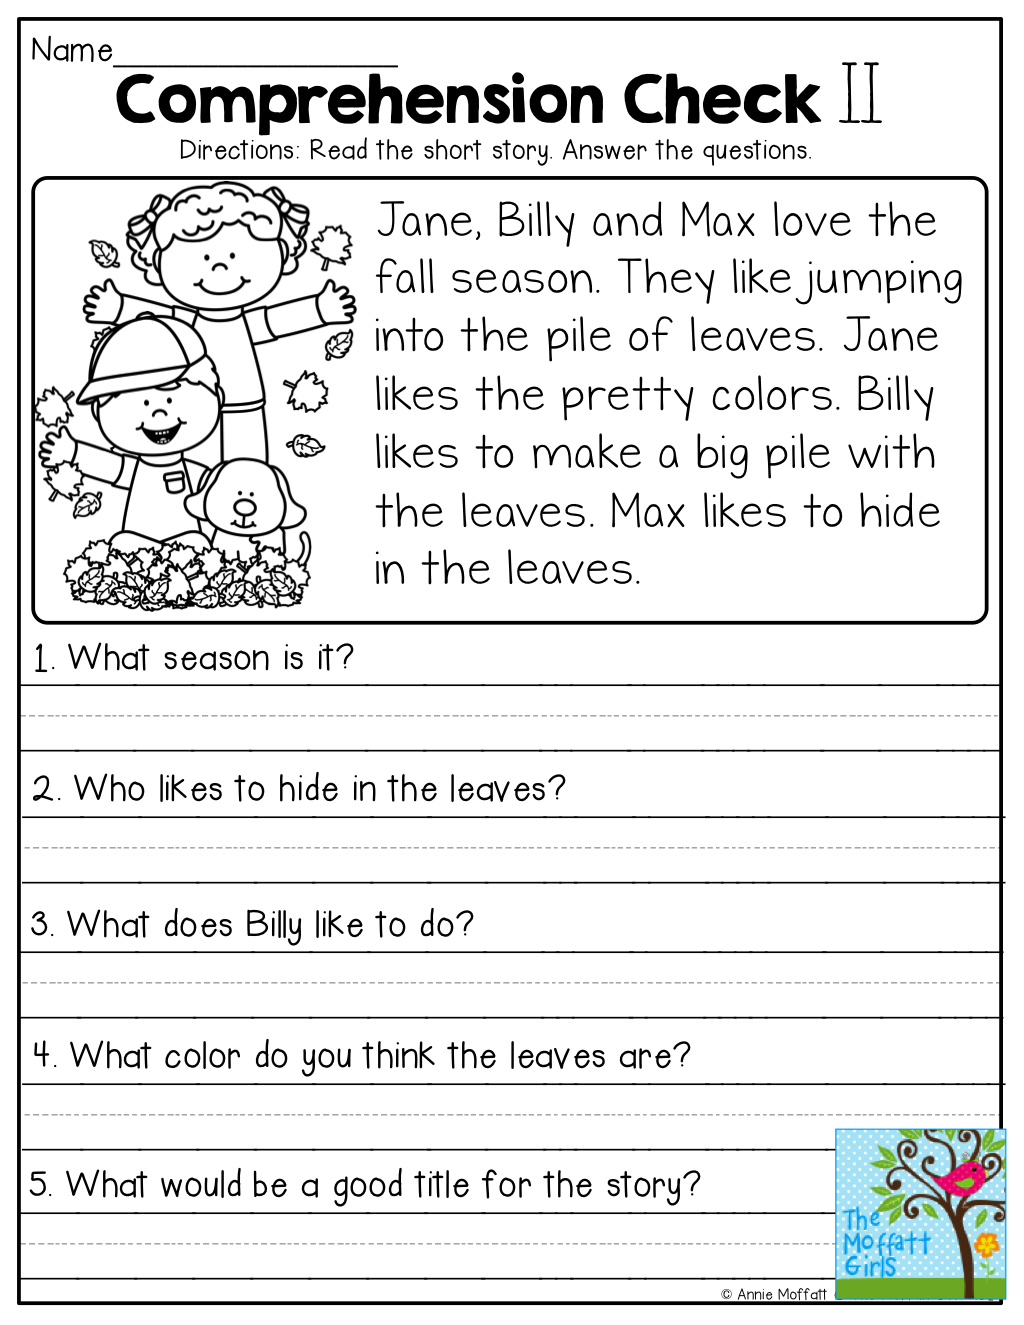 Worksheet Comprehension For Grade 5 17 best images about listening comprehension on pinterest activities student centered resources and therapy